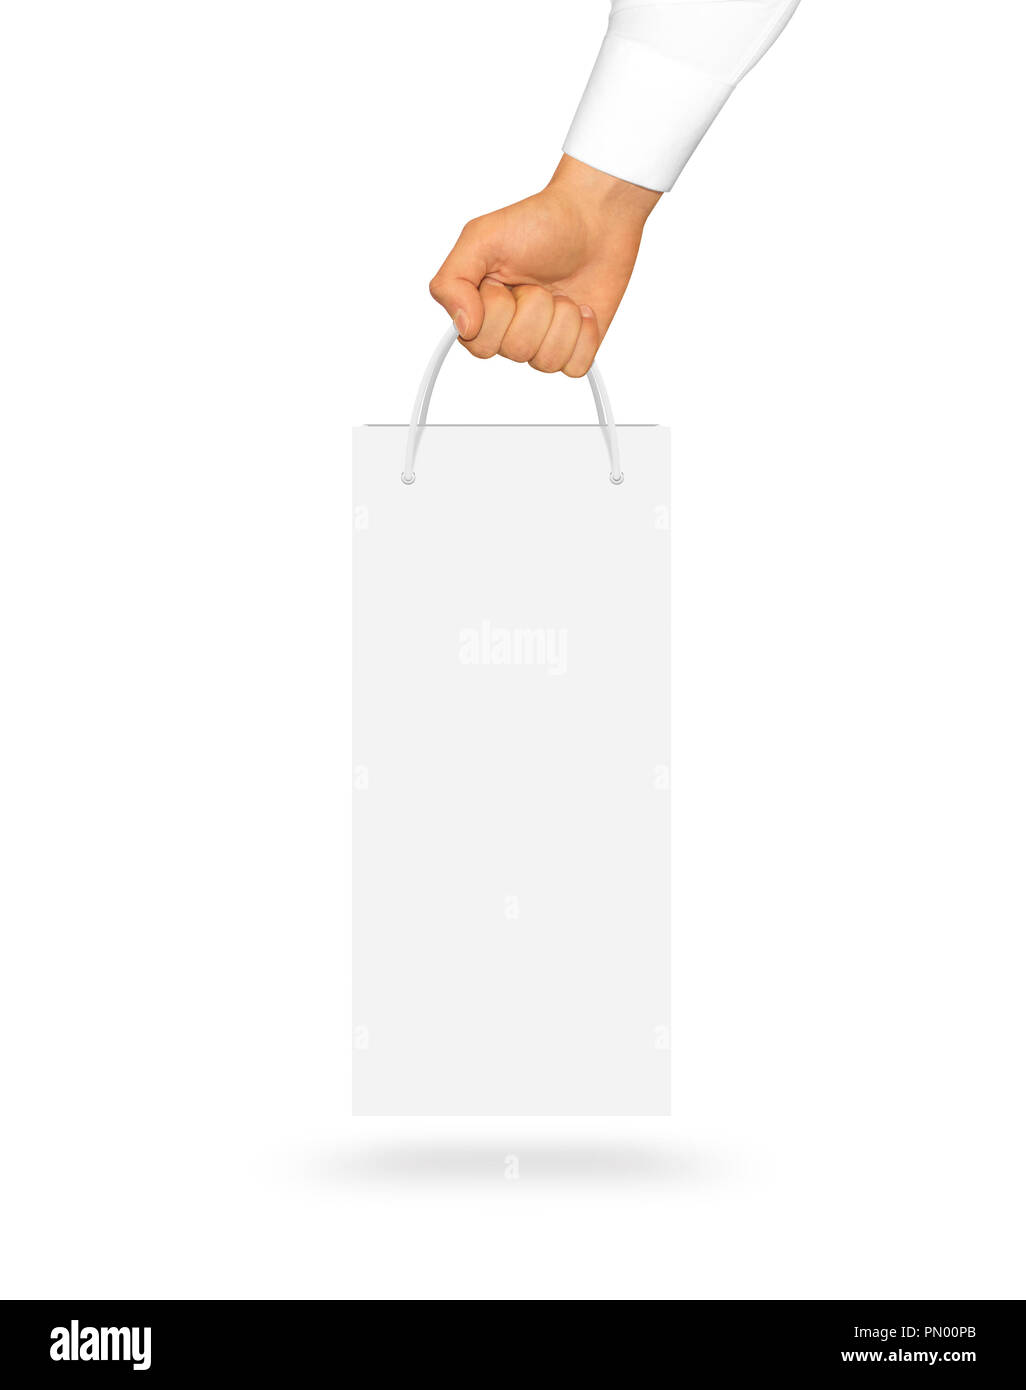 Blank White Wine Paper Bag Mock Up Holding In Hand Empty Plastic